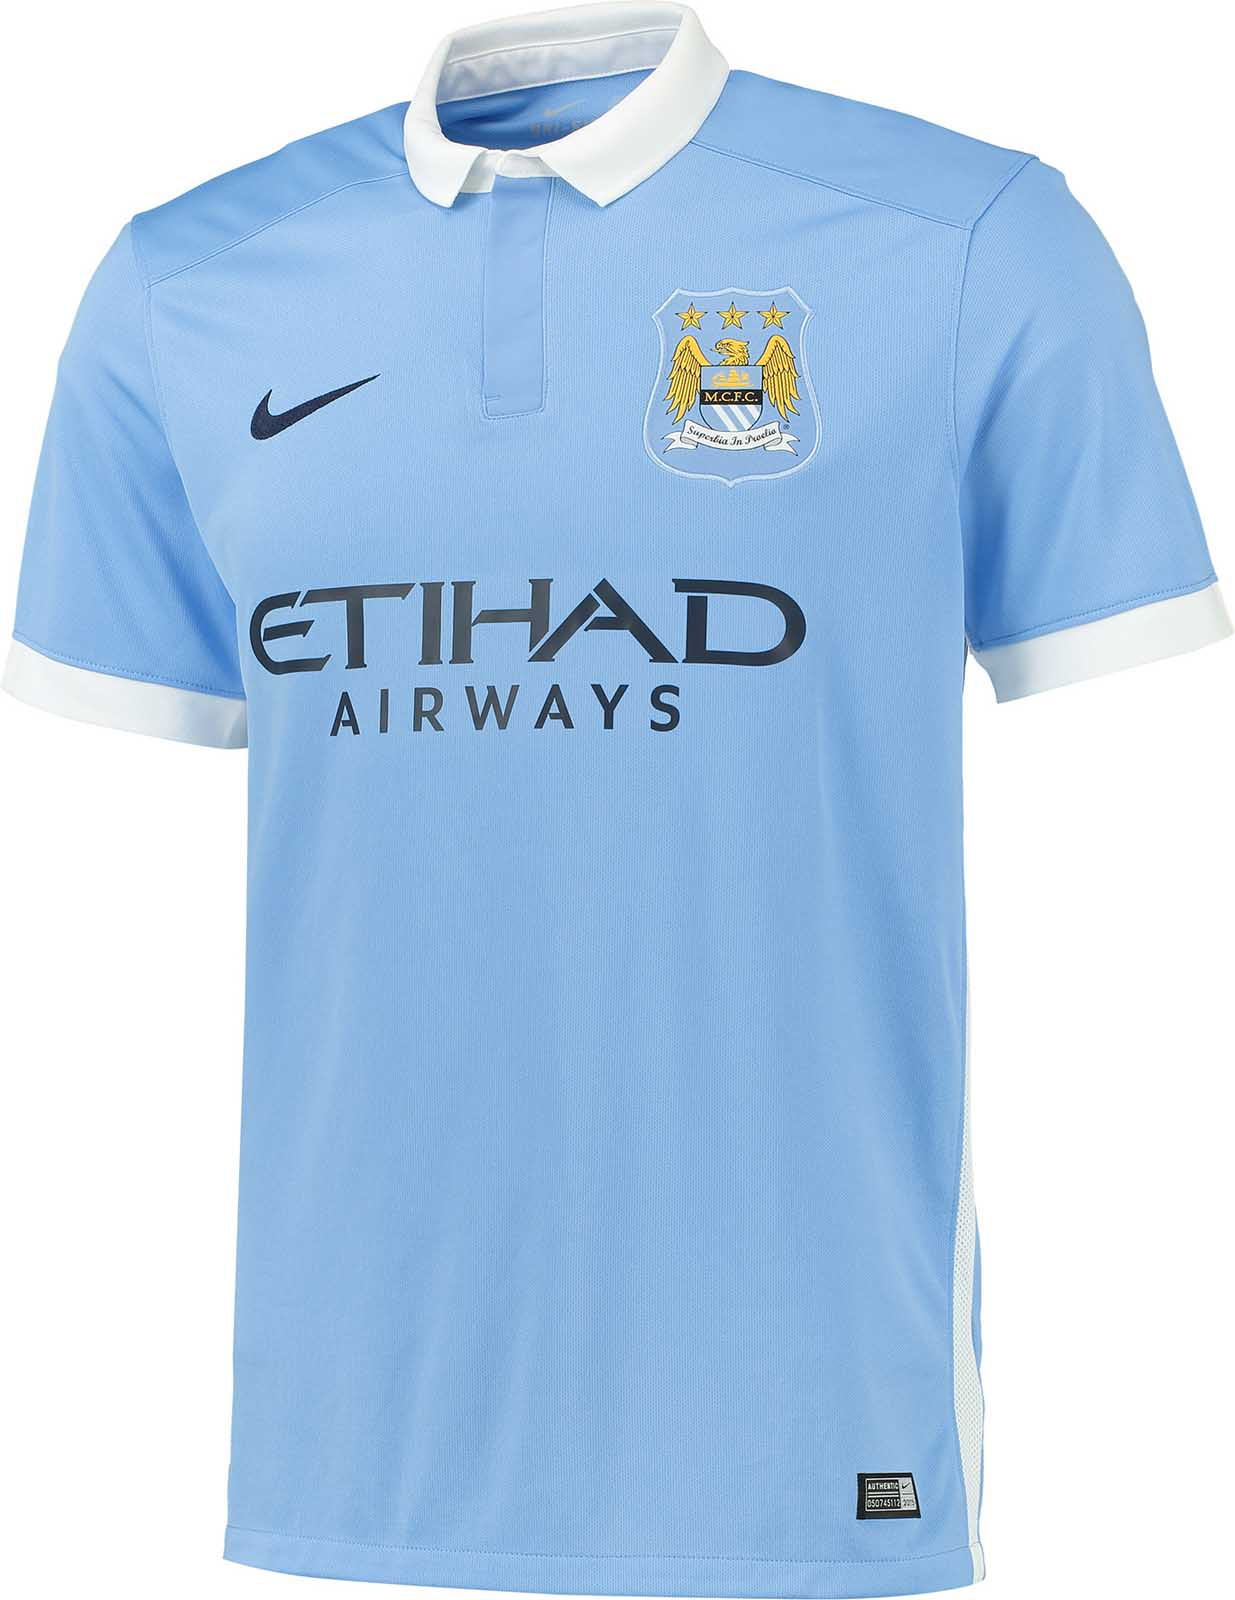 Manchester City 15-16 Home Kit Released - Footy Headlines